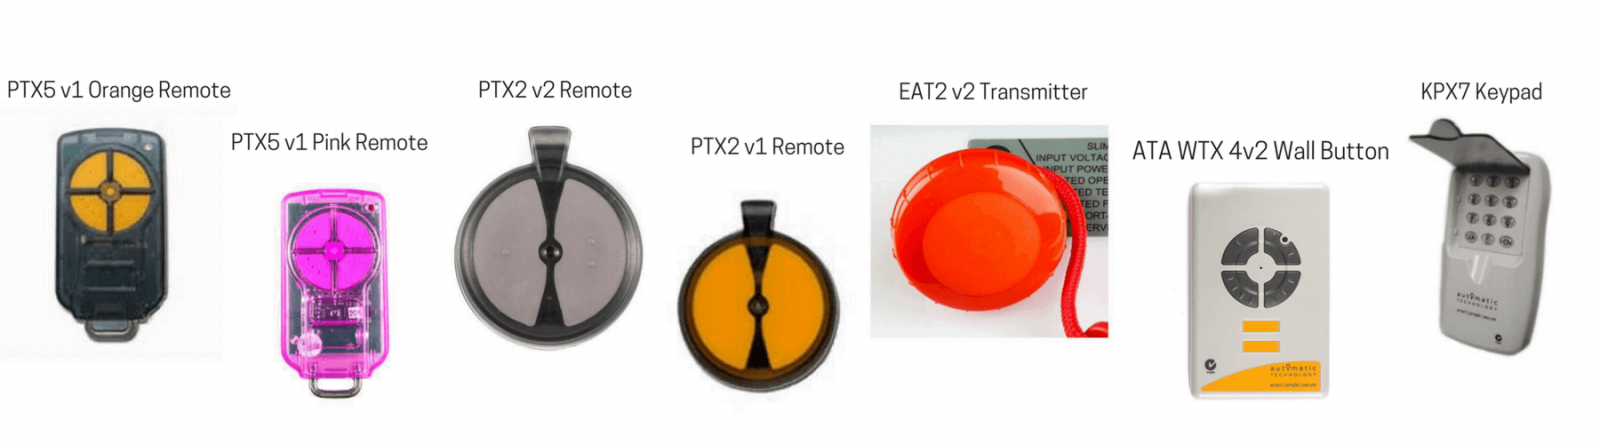 ATA PTX5 is compatible with